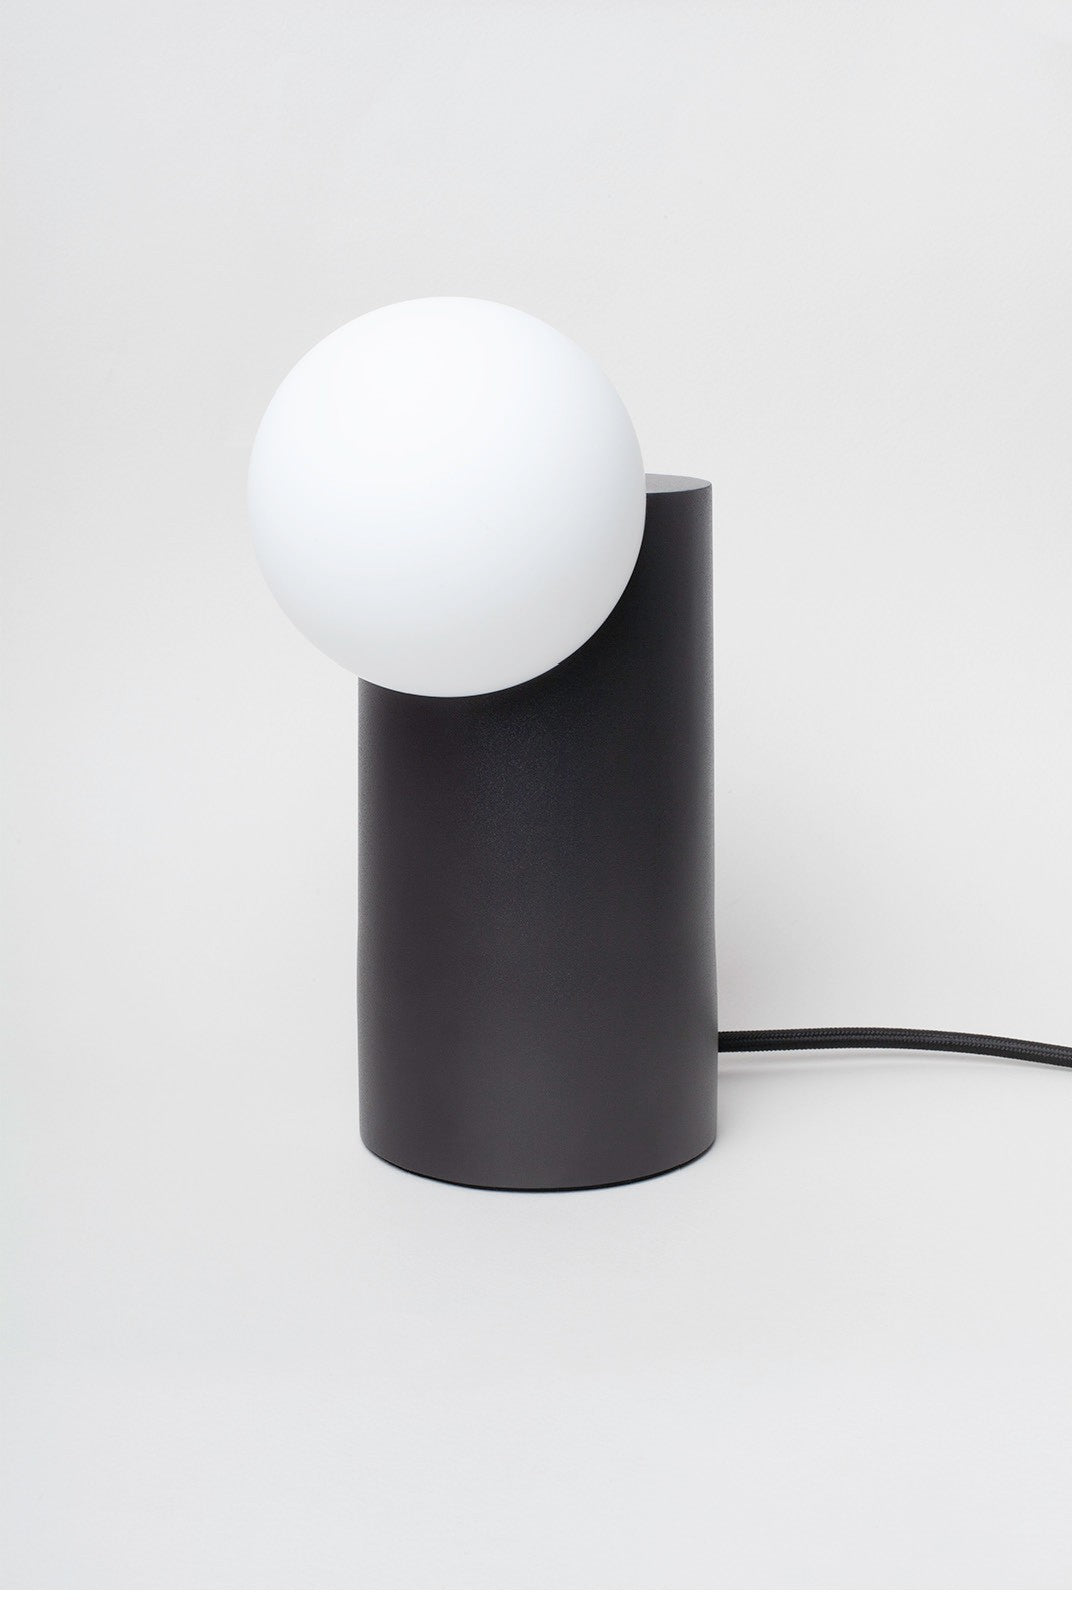 Lamp featuring a black cylinder with a circular globe